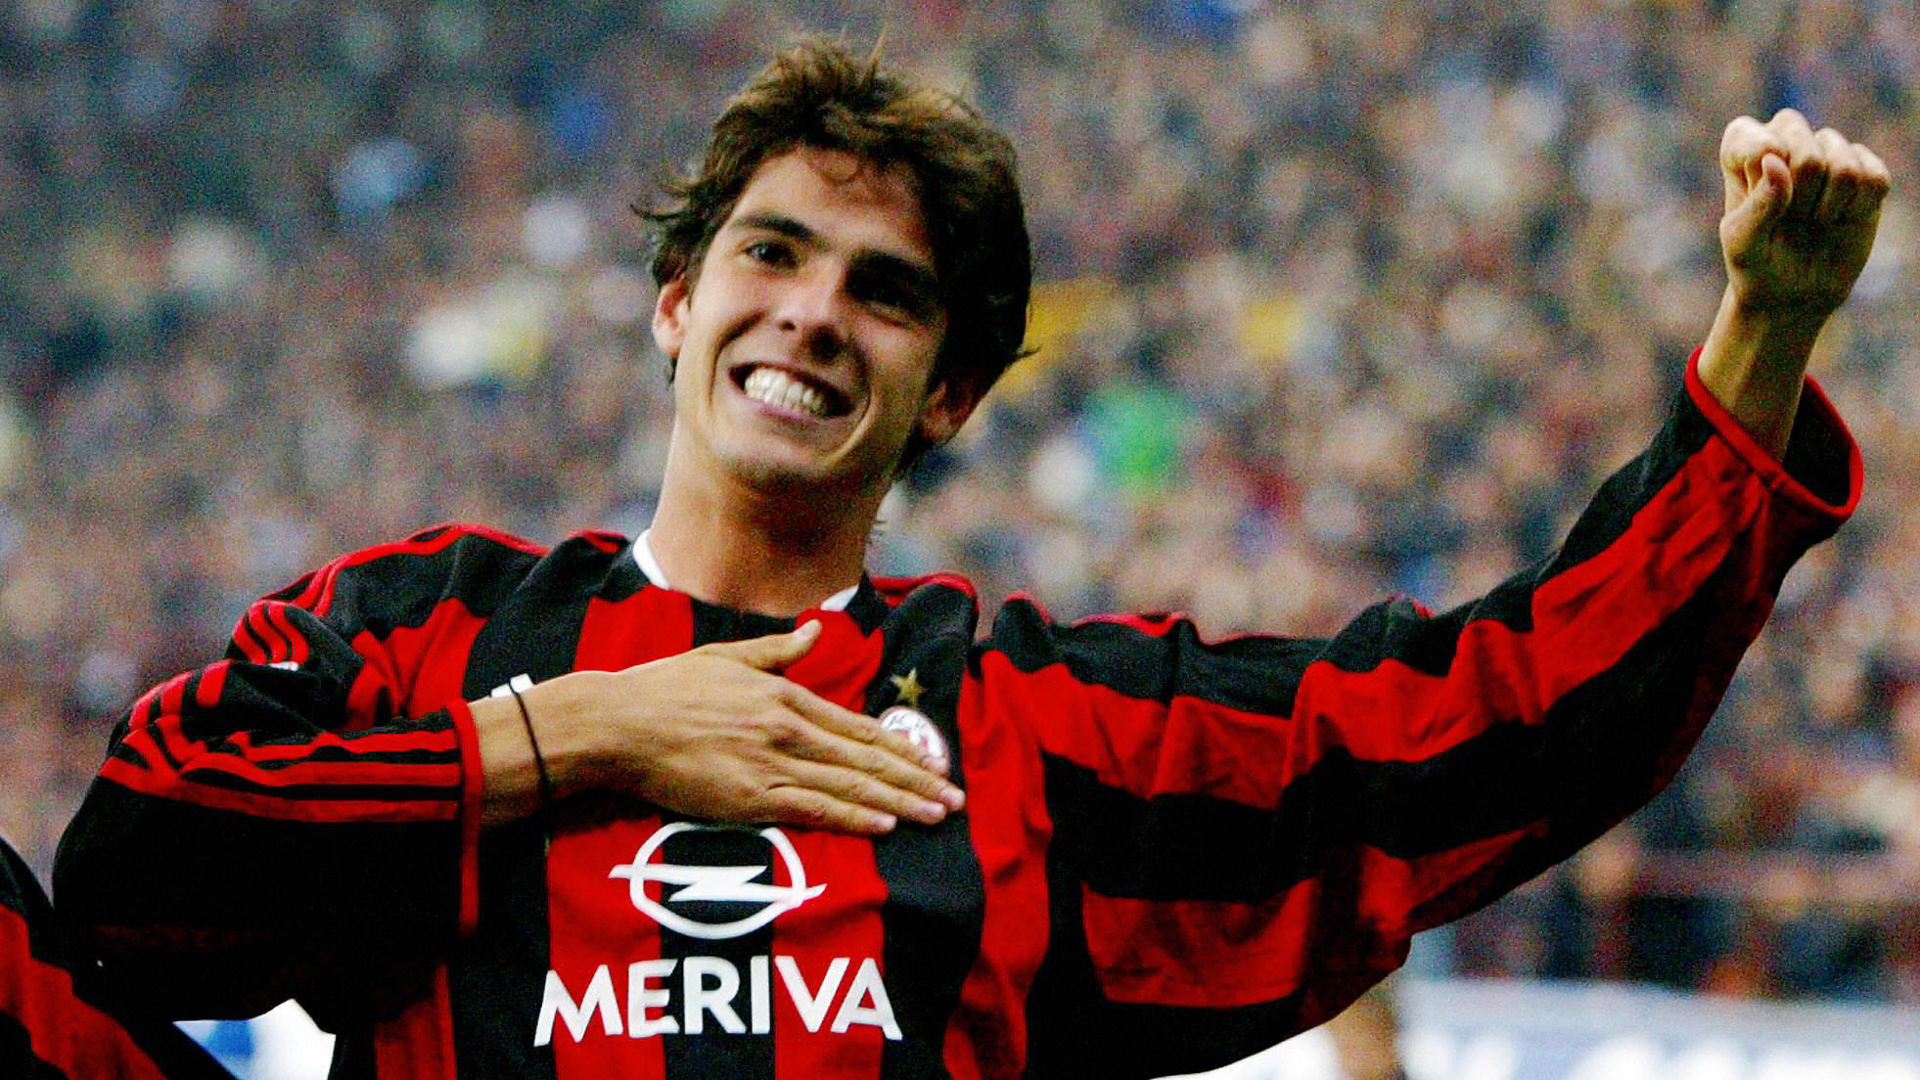 'It still gives me goosebumps' - Kaka remembers 'authentic' relationship with AC Milan fans